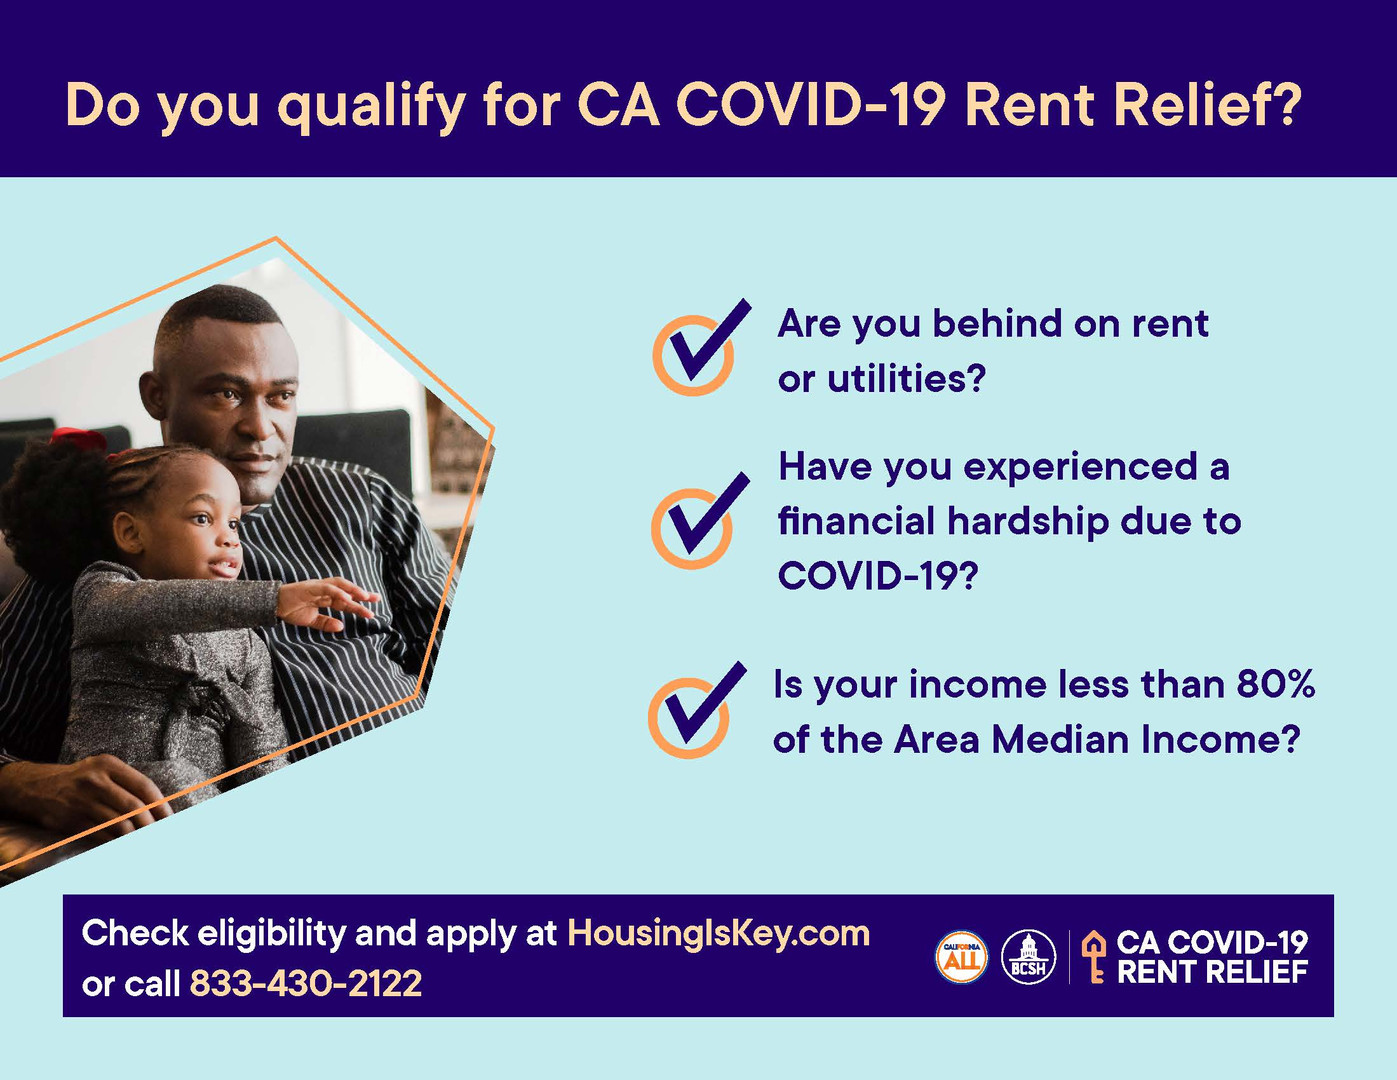 Do I qualify for CA COVID-19 rent relief?